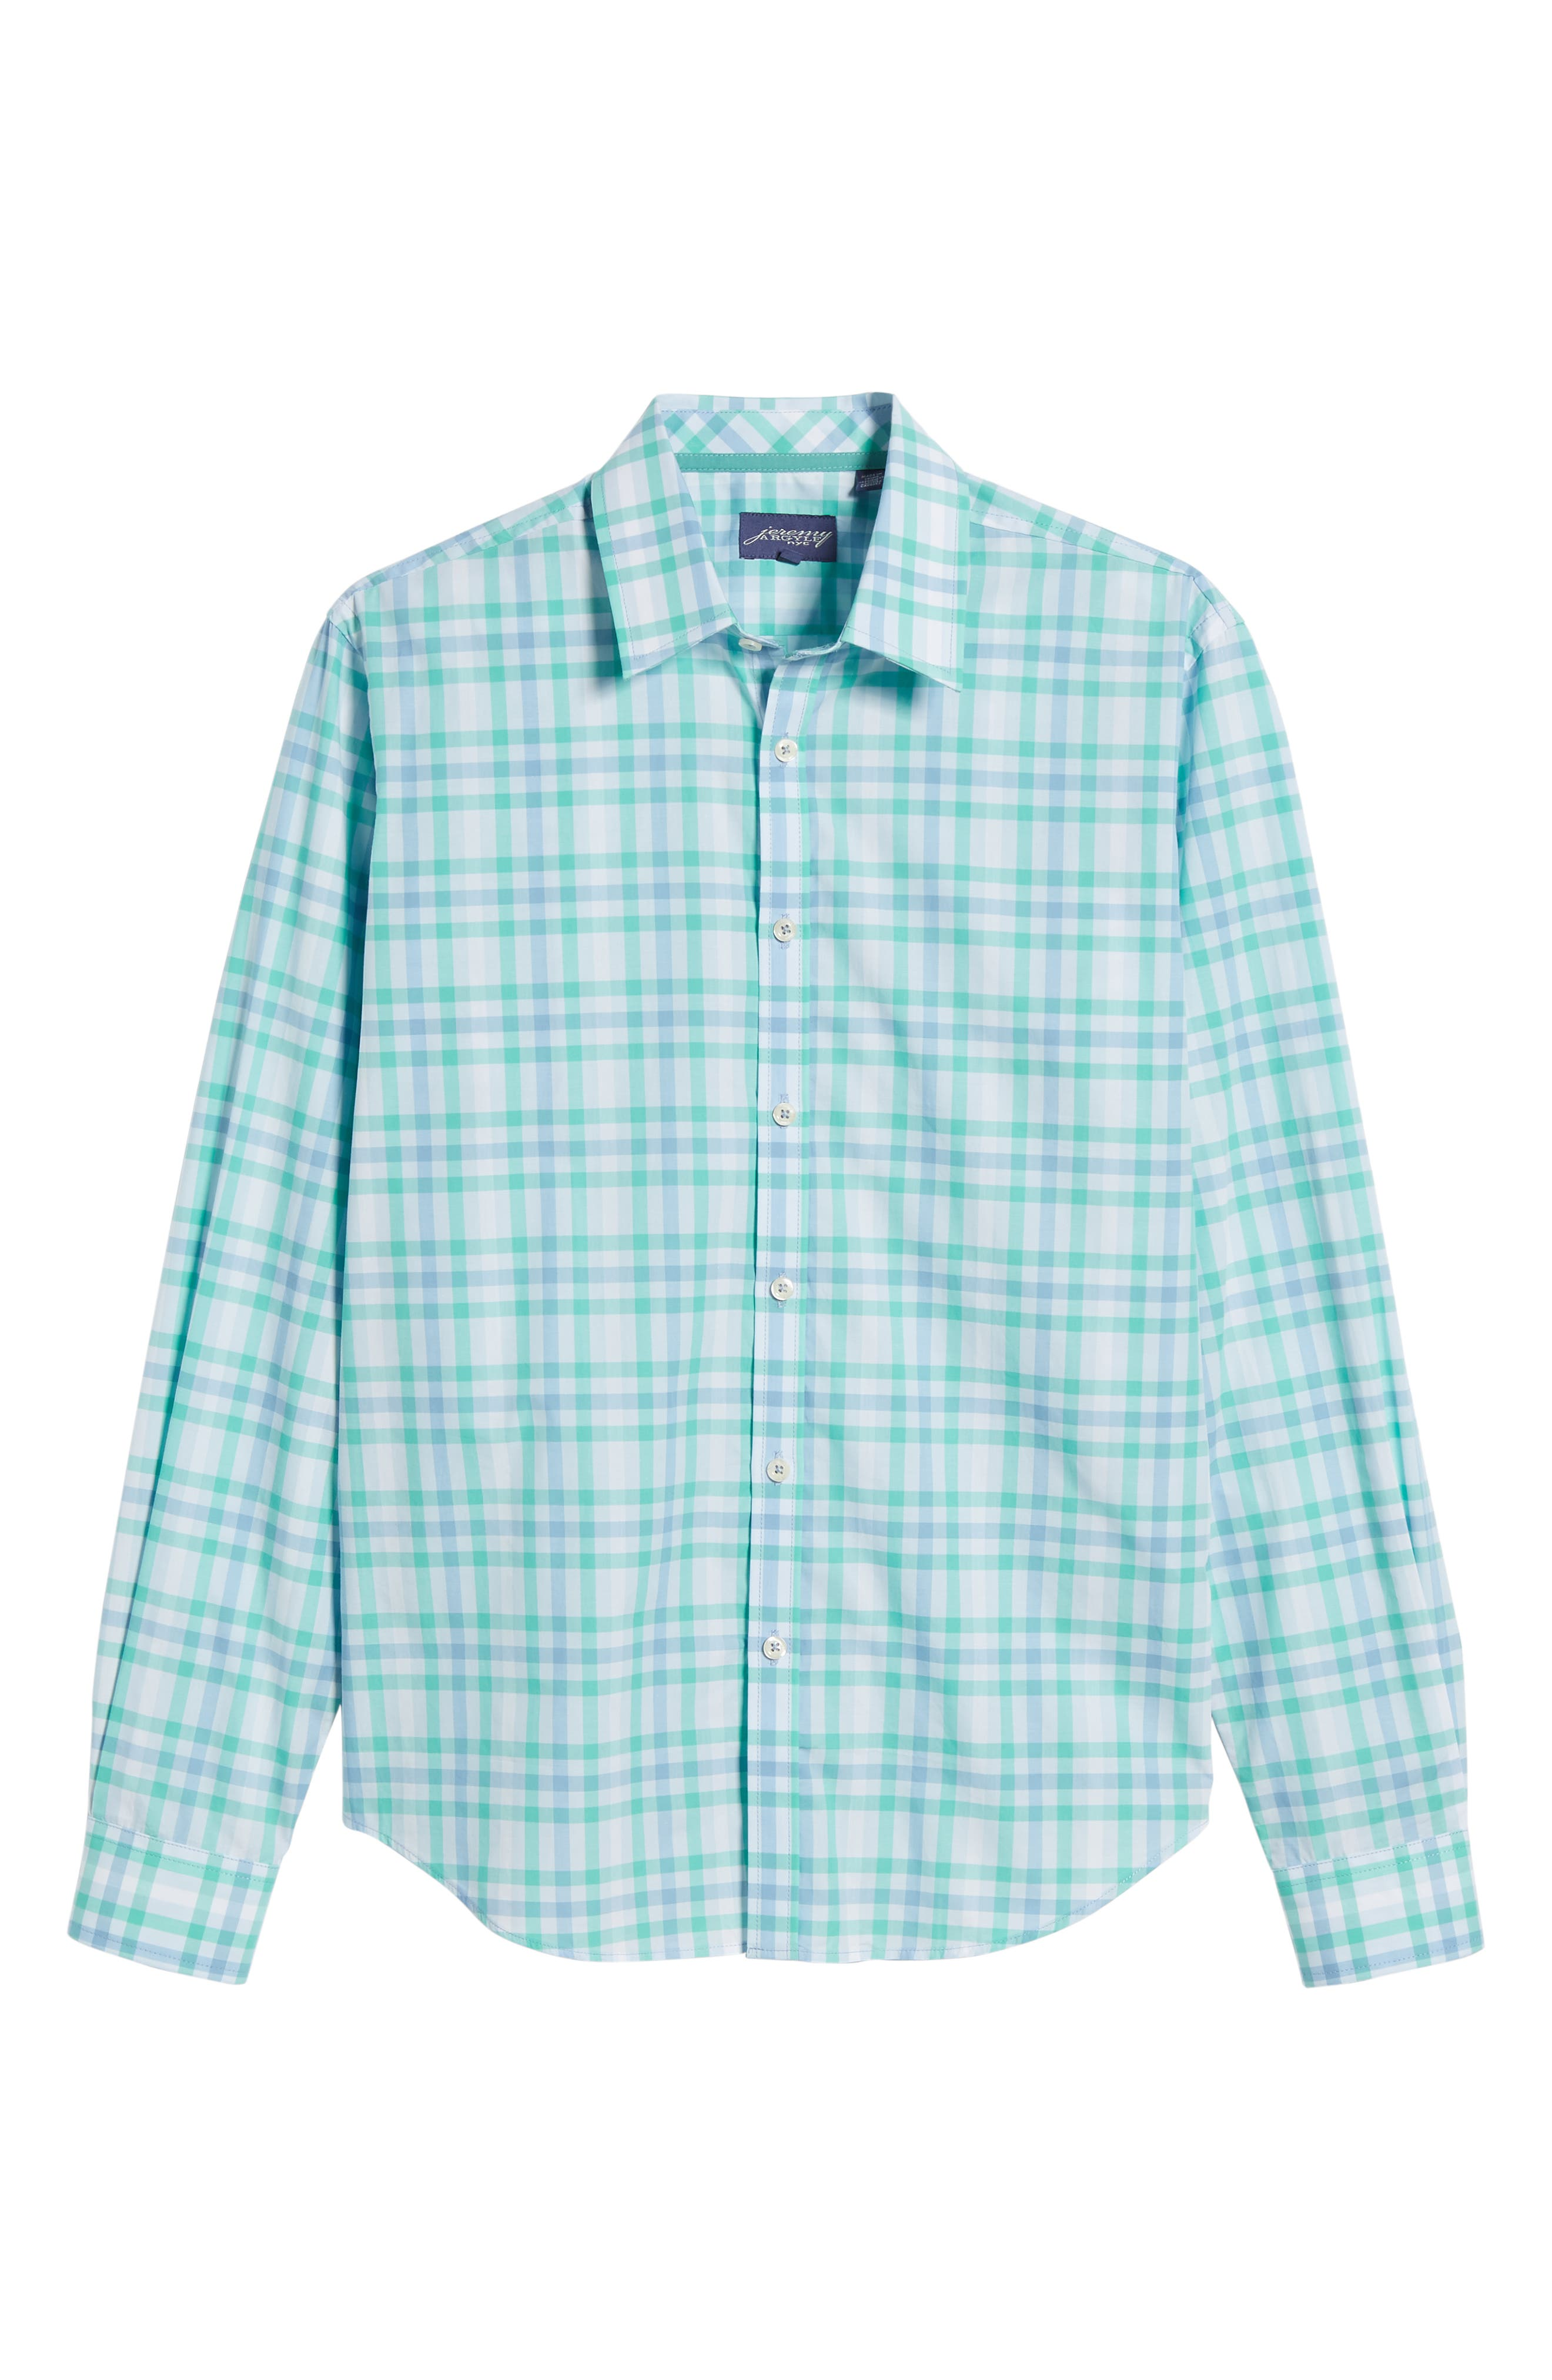 Slim Fit Check Sport Shirt,                             Alternate thumbnail 6, color,                             439